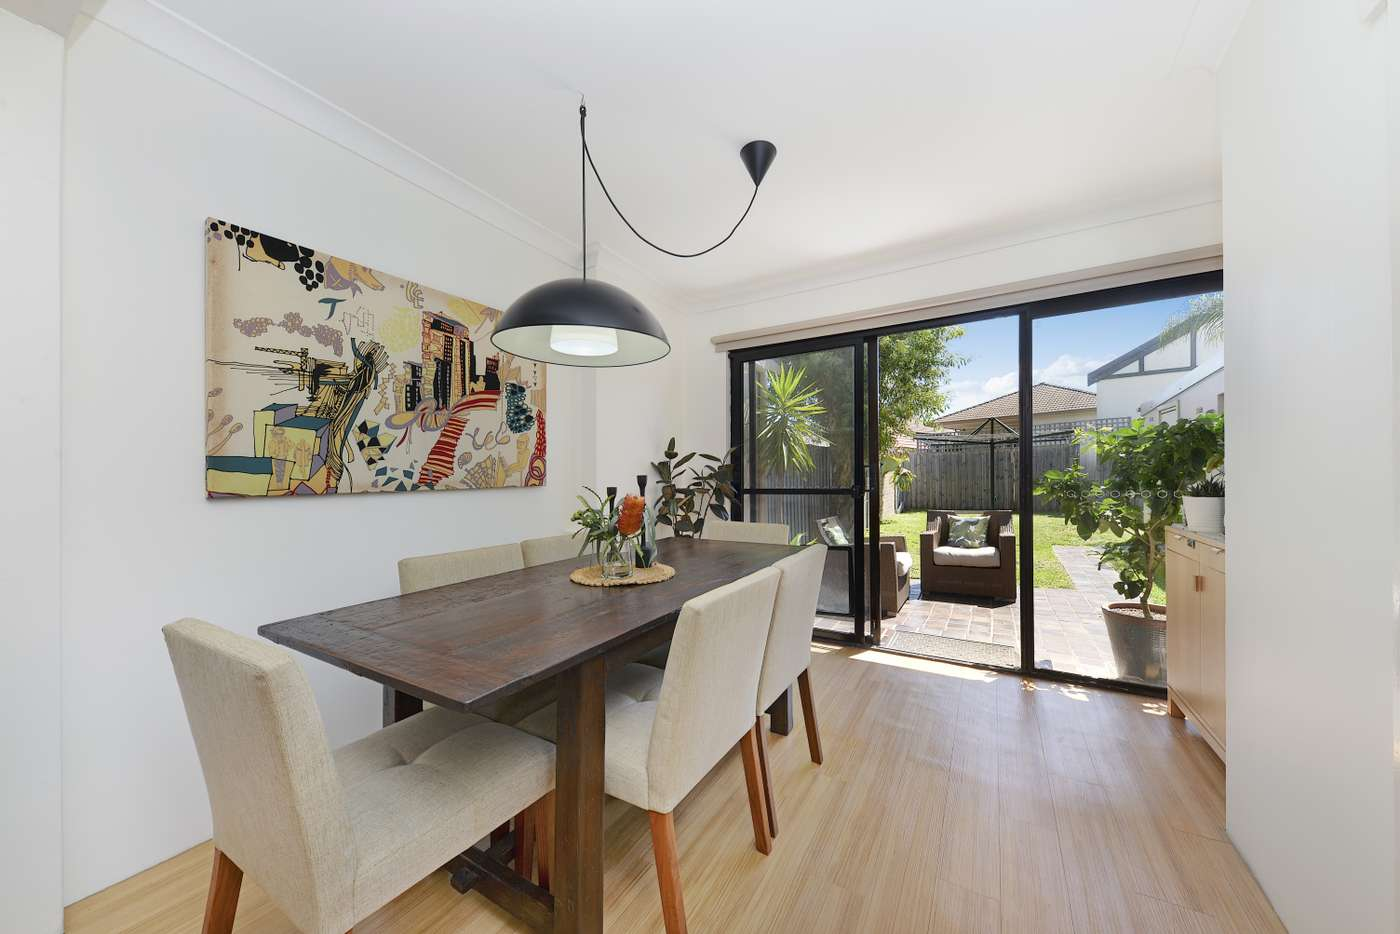 Sixth view of Homely house listing, 12 Kingsford Street, Maroubra NSW 2035